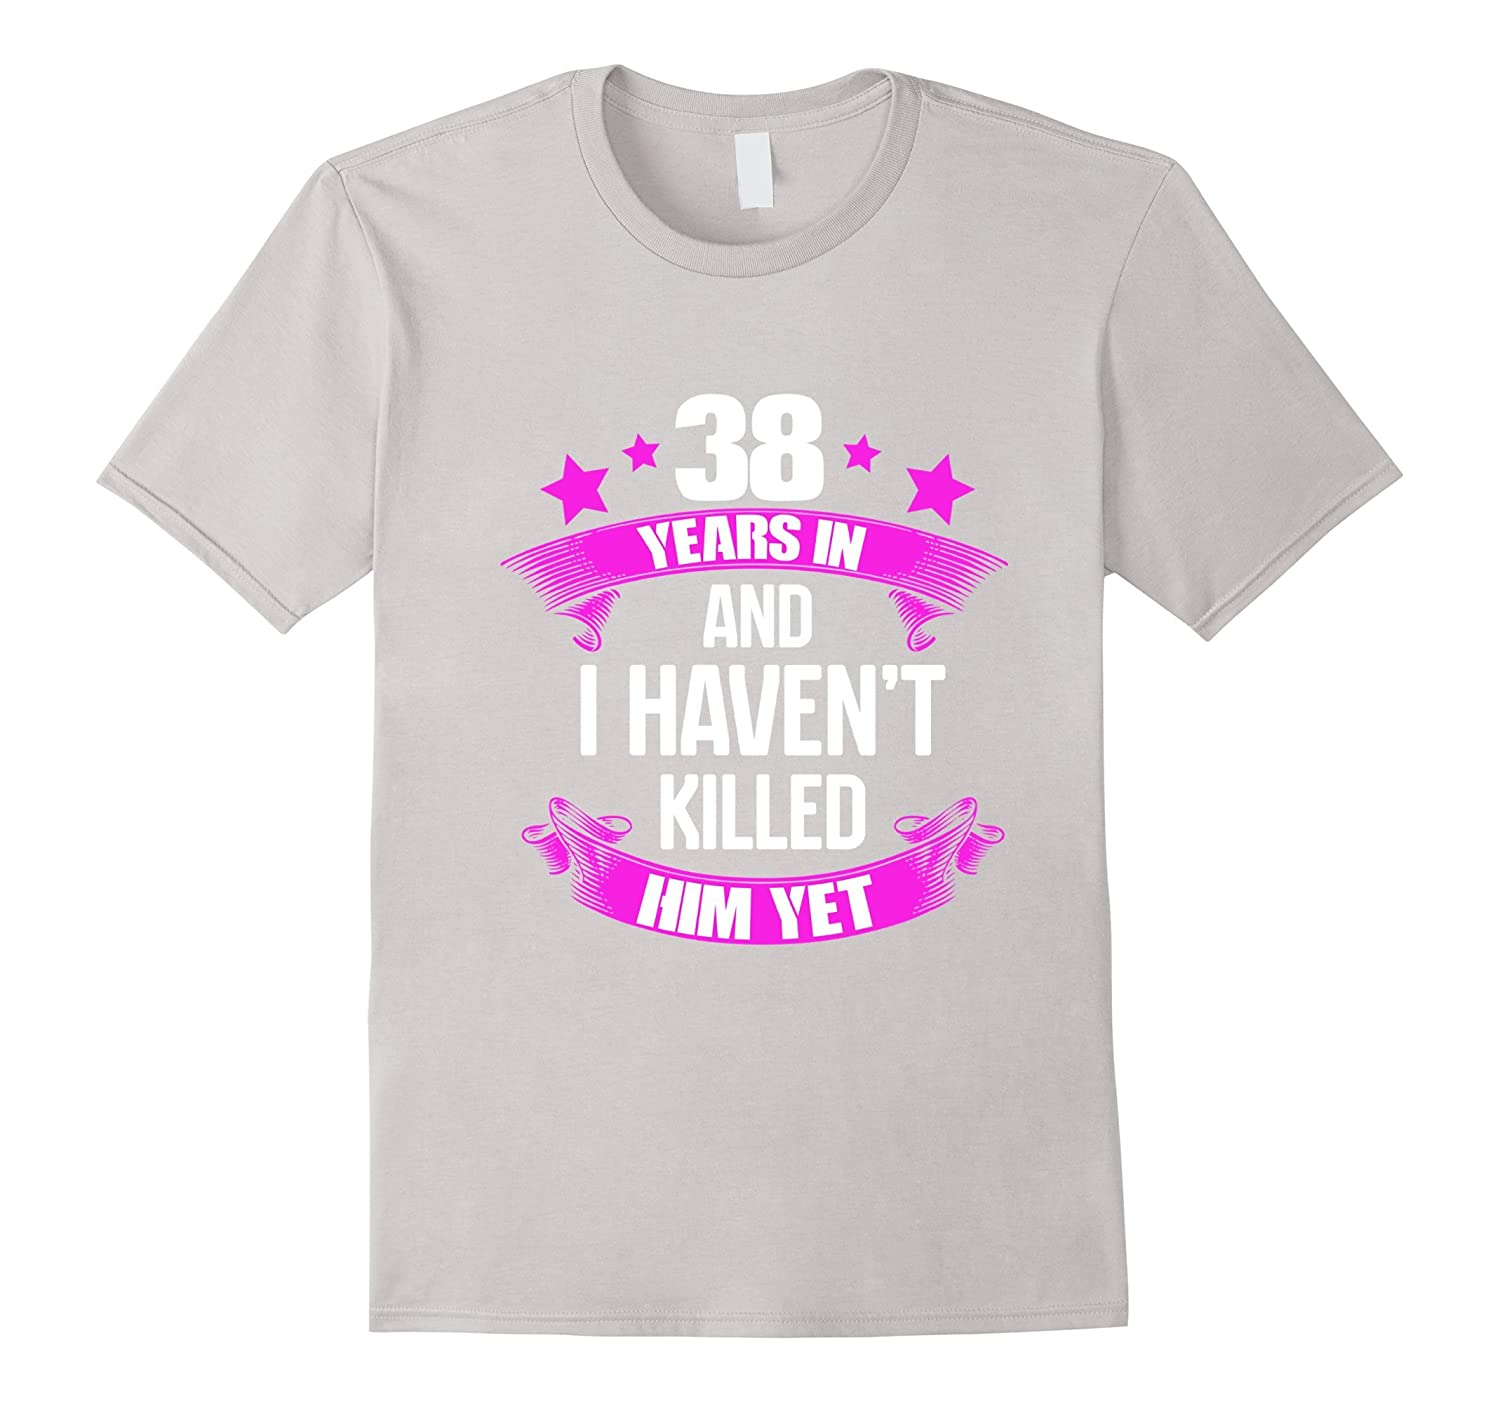 38th Wedding Anniversary Gift Ideas: 38th Wedding Anniversary T-Shirt For Wife. Funny Gifts